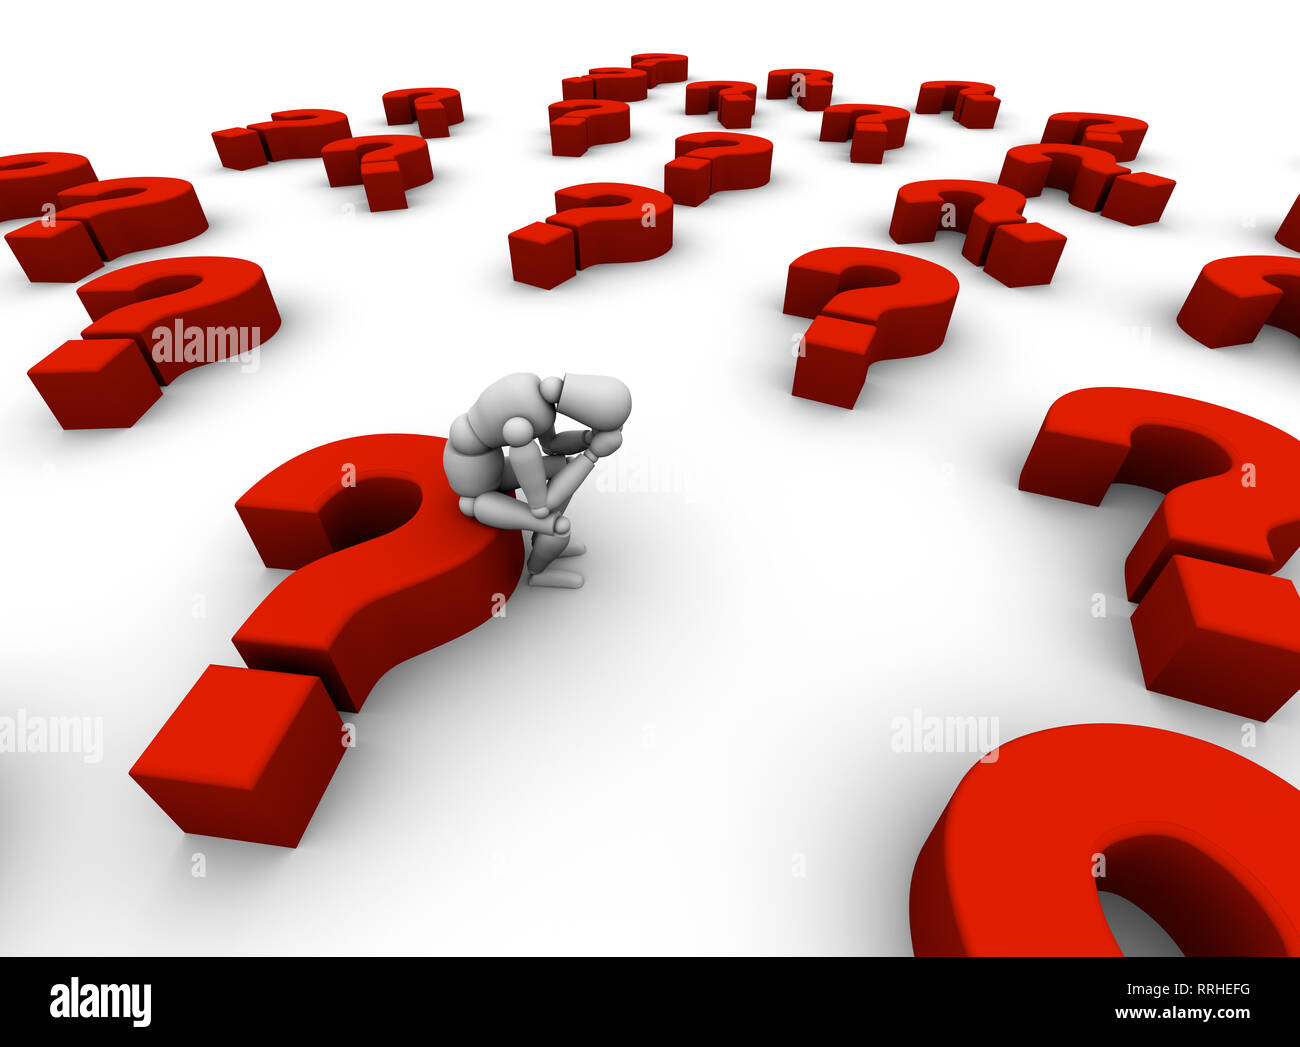 3D illustration of a sad mannequin sitting in a sea of red question marks. - Stock Image